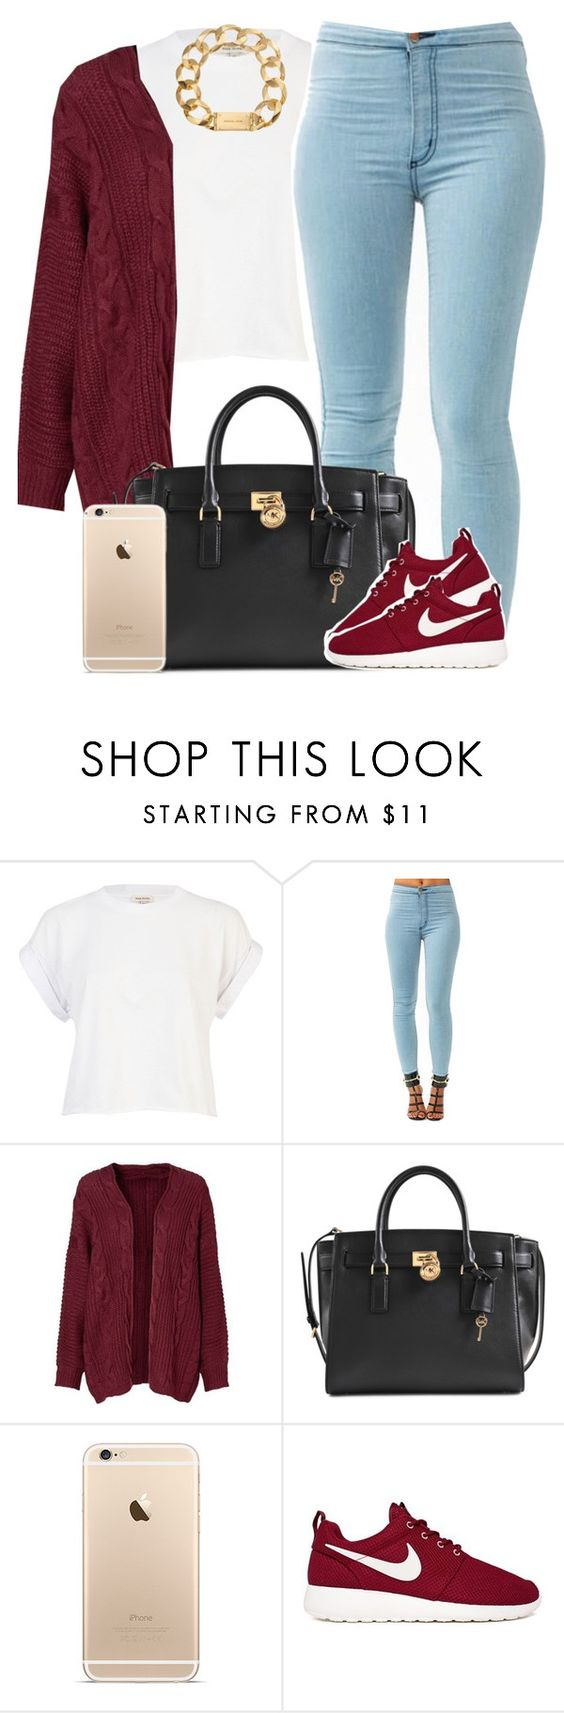 """""""Somebody."""" by livelifefreelyy ❤ liked on Polyvore featuring River Island, Michael Kors, NIKE, women's clothing, women, female, woman, misses and juniors"""